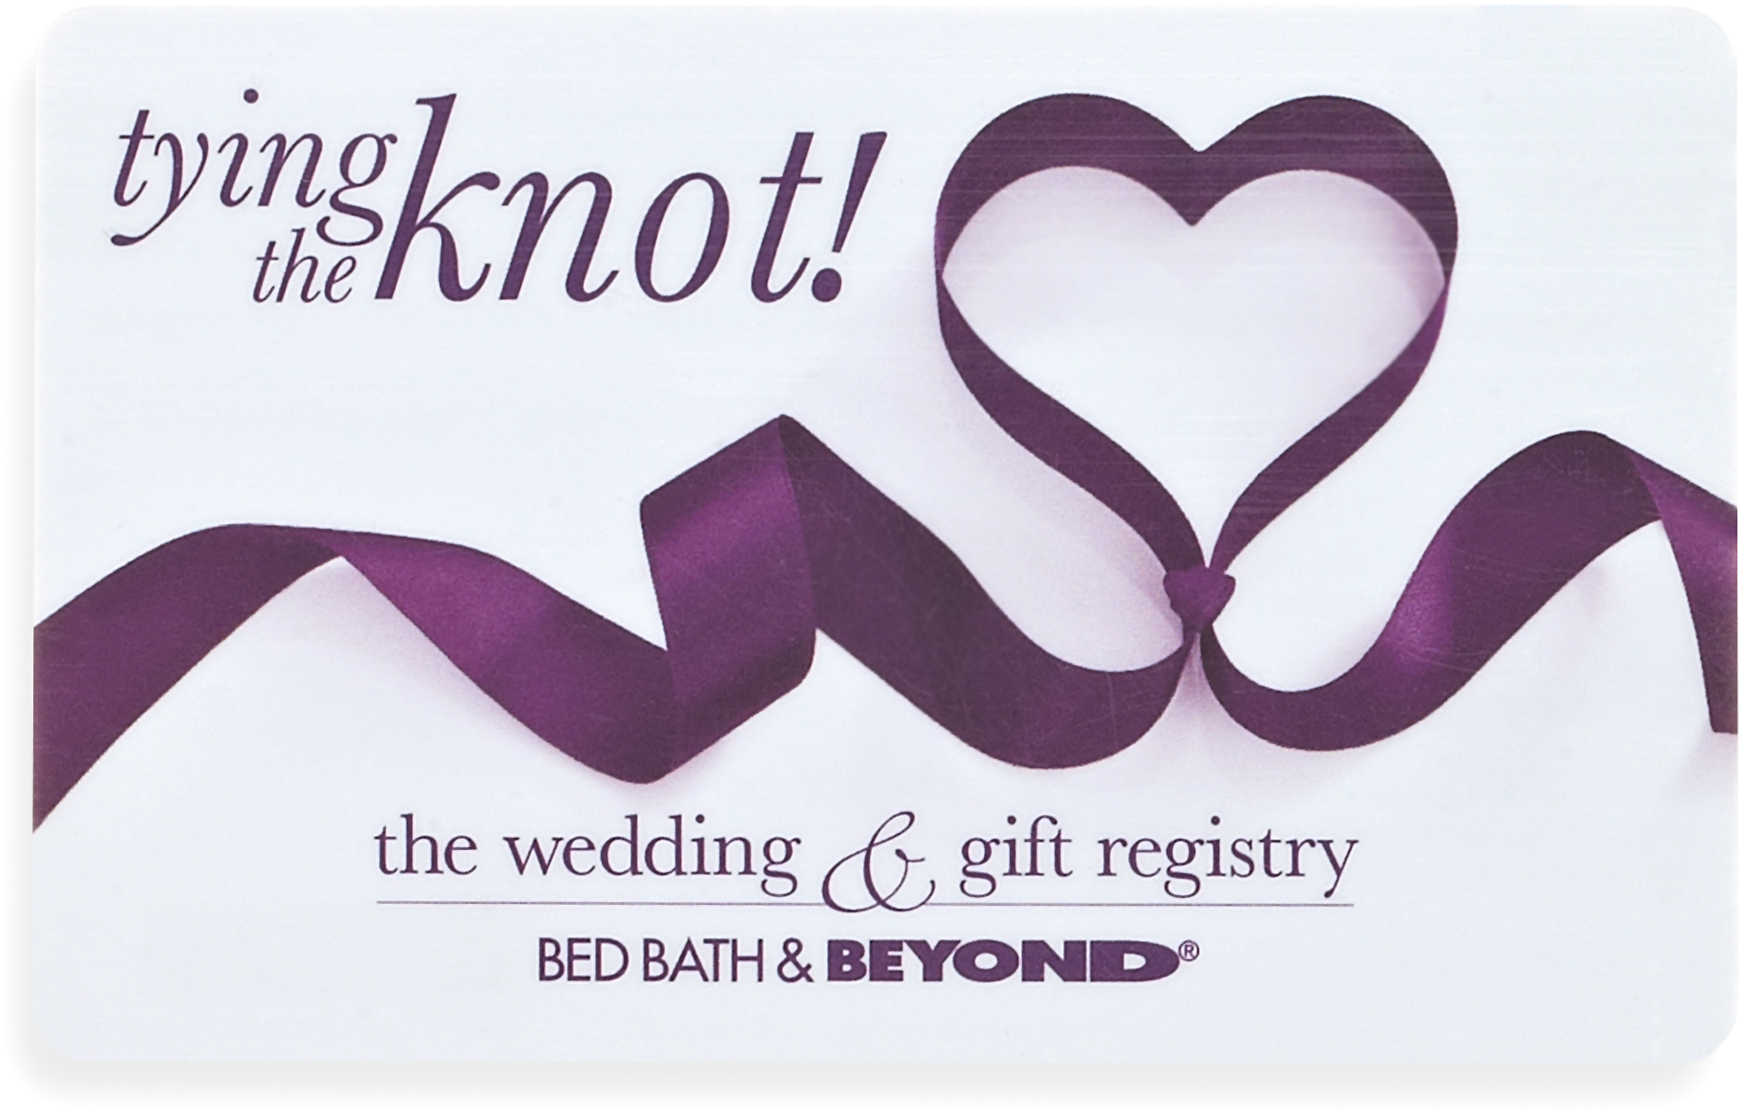 tying the knot ribbon heart gift card 25 bed bath beyond